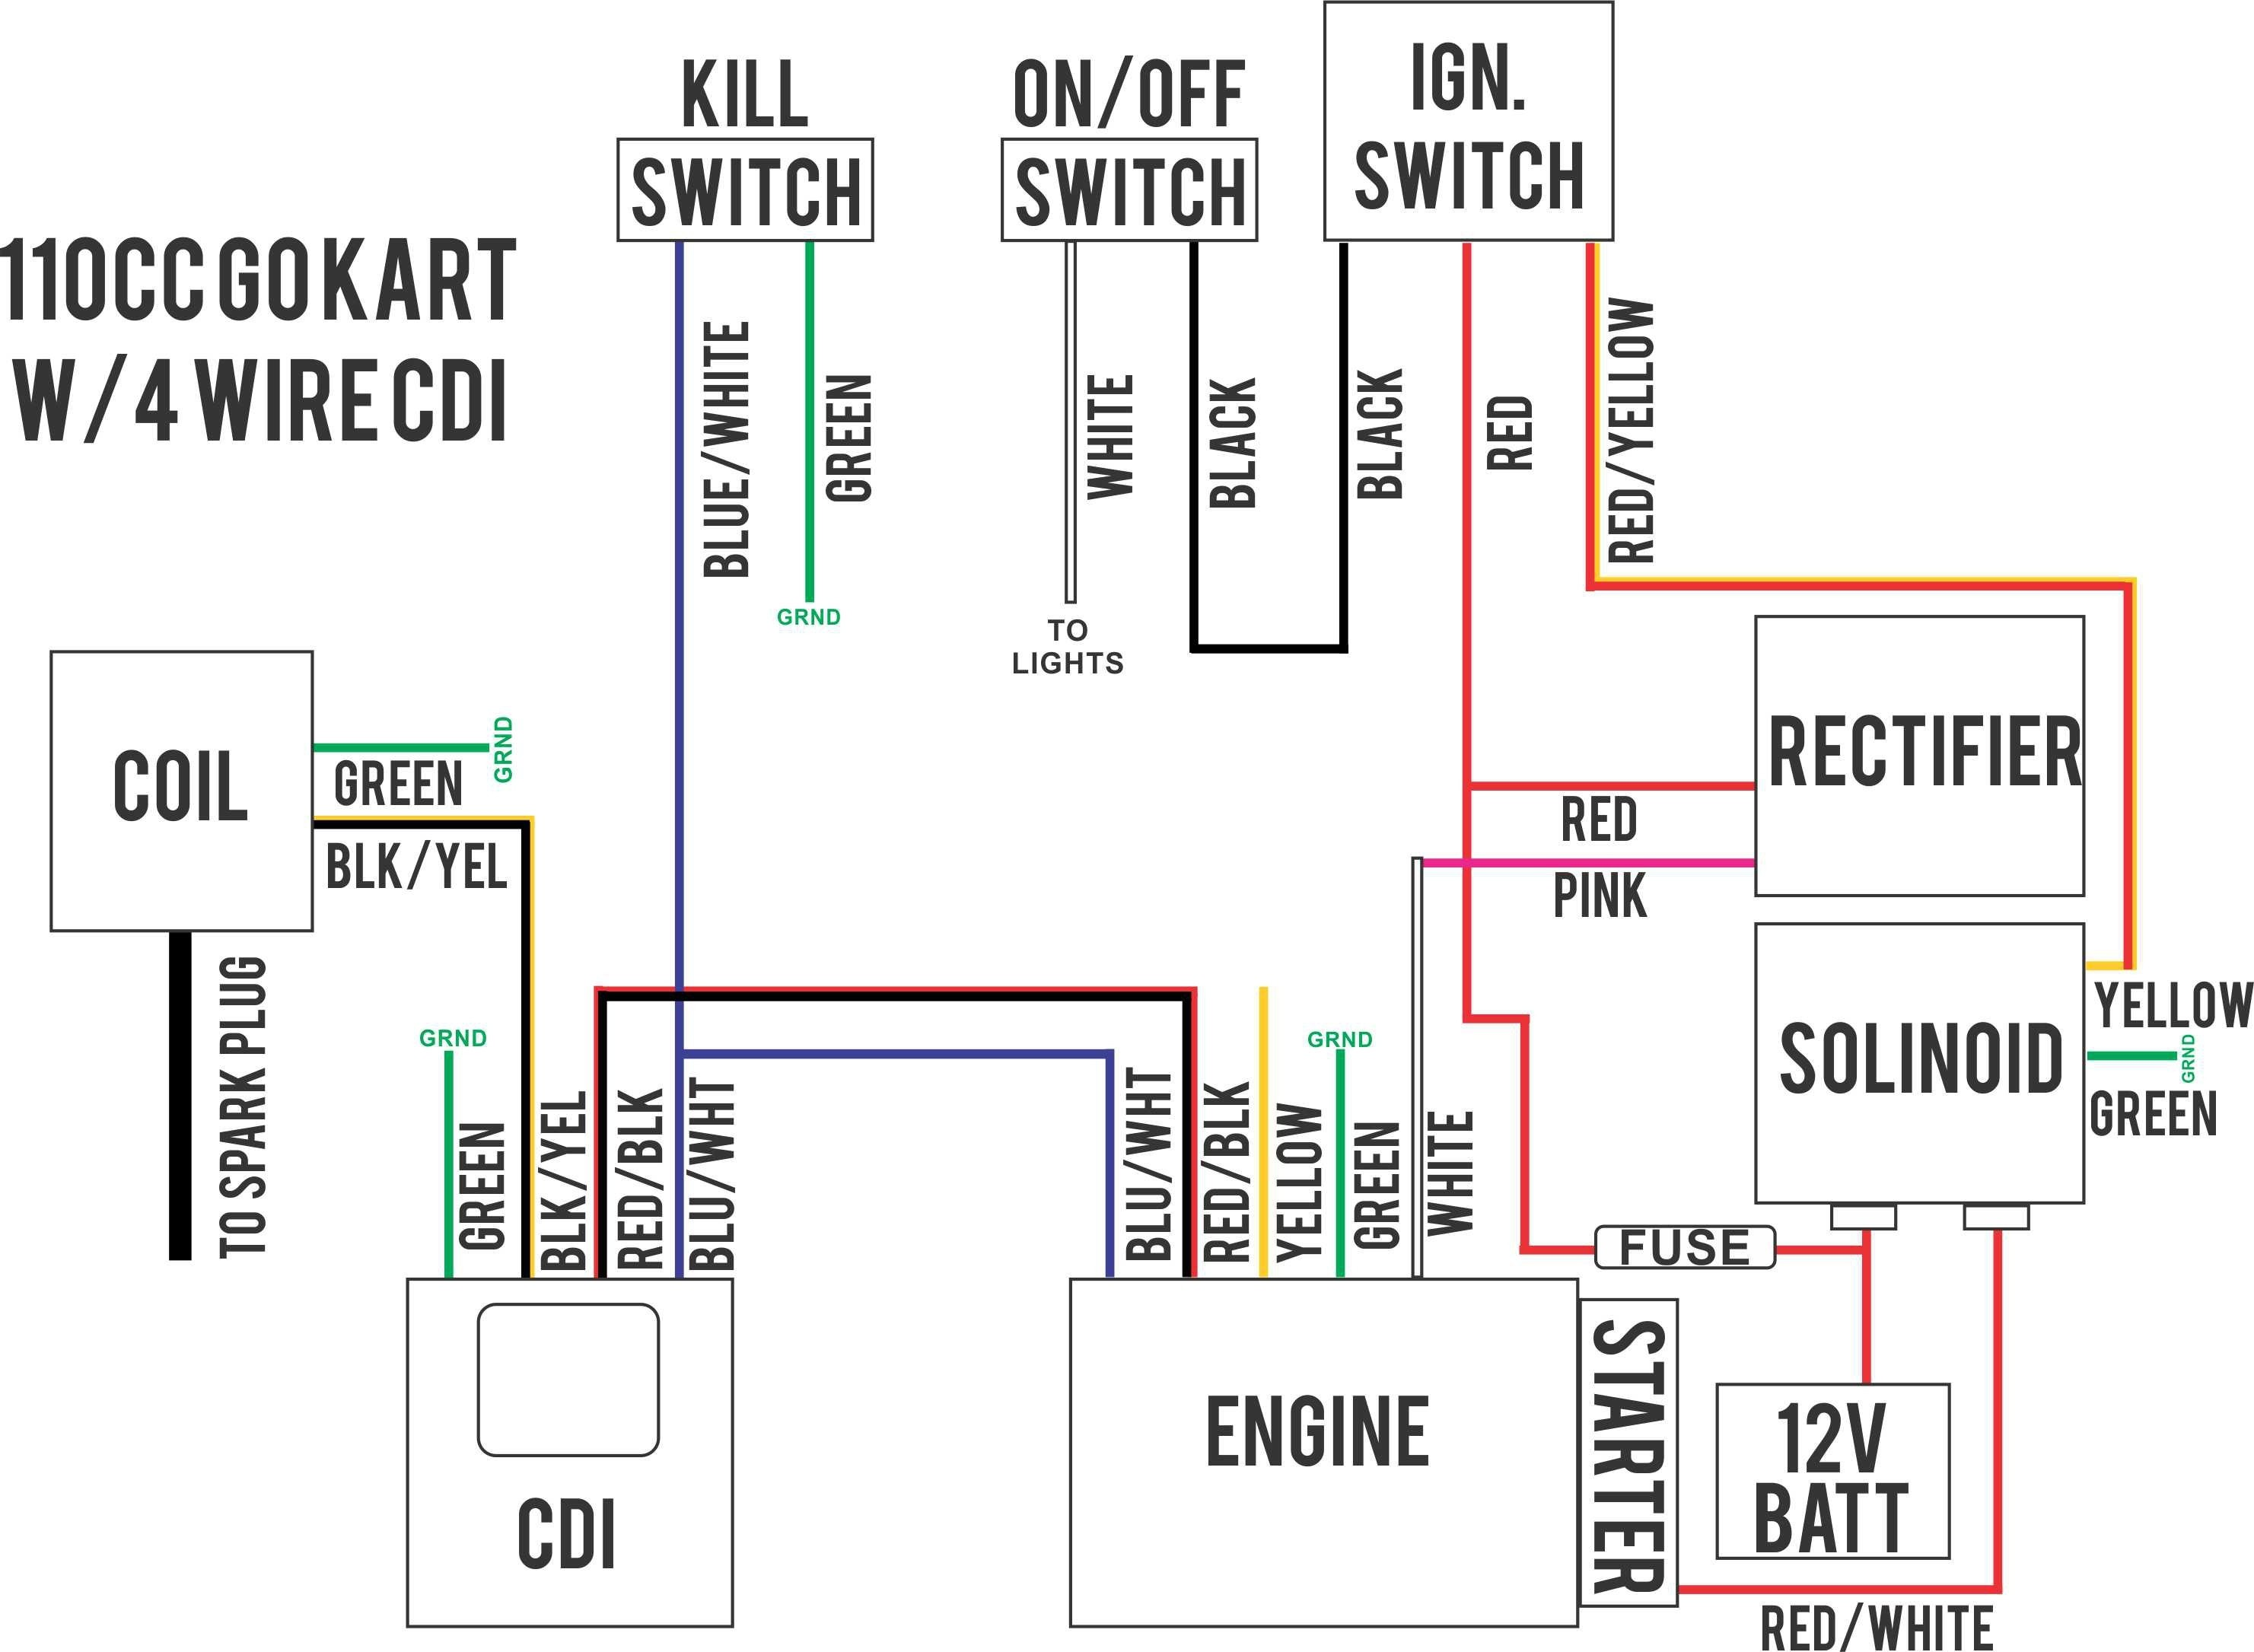 wiring pocket diagram bike gsmoonsuper | wiring library  wiring library